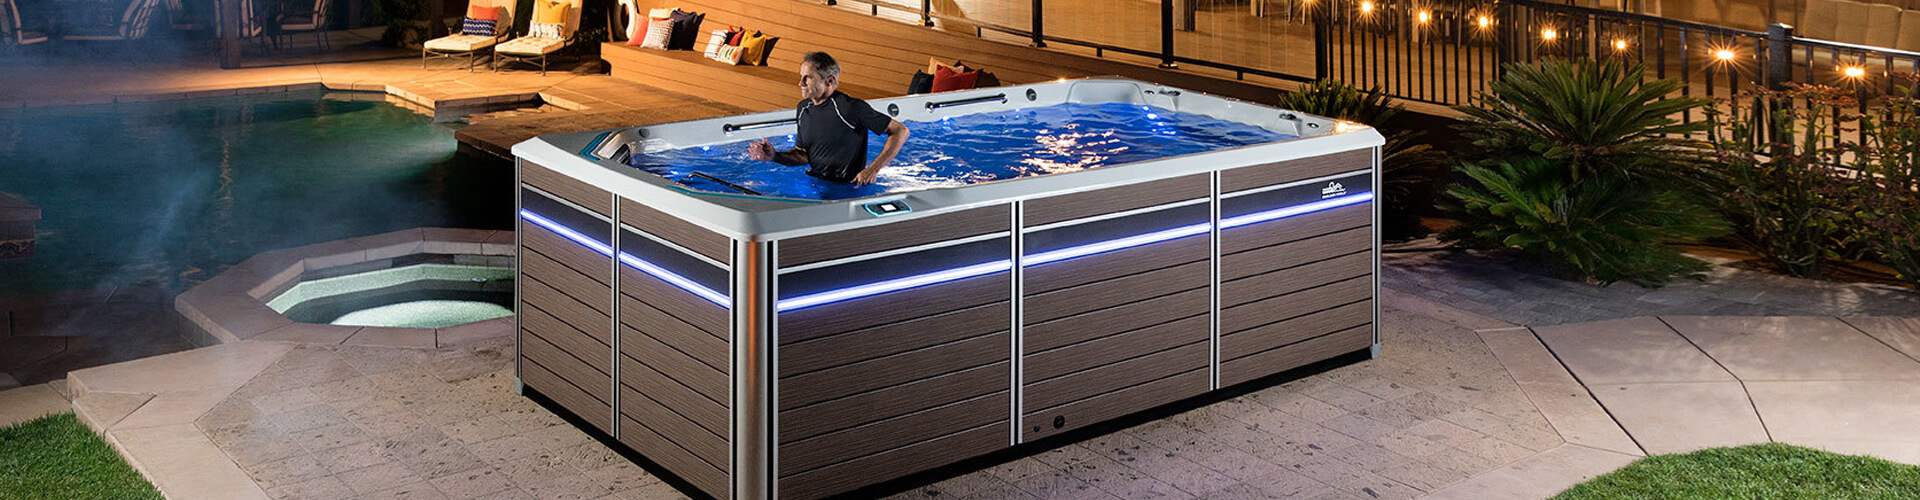 3 Ways a Lap Pool May Be Better Than a Traditional Pool, Swim Spa Dealer Prescott